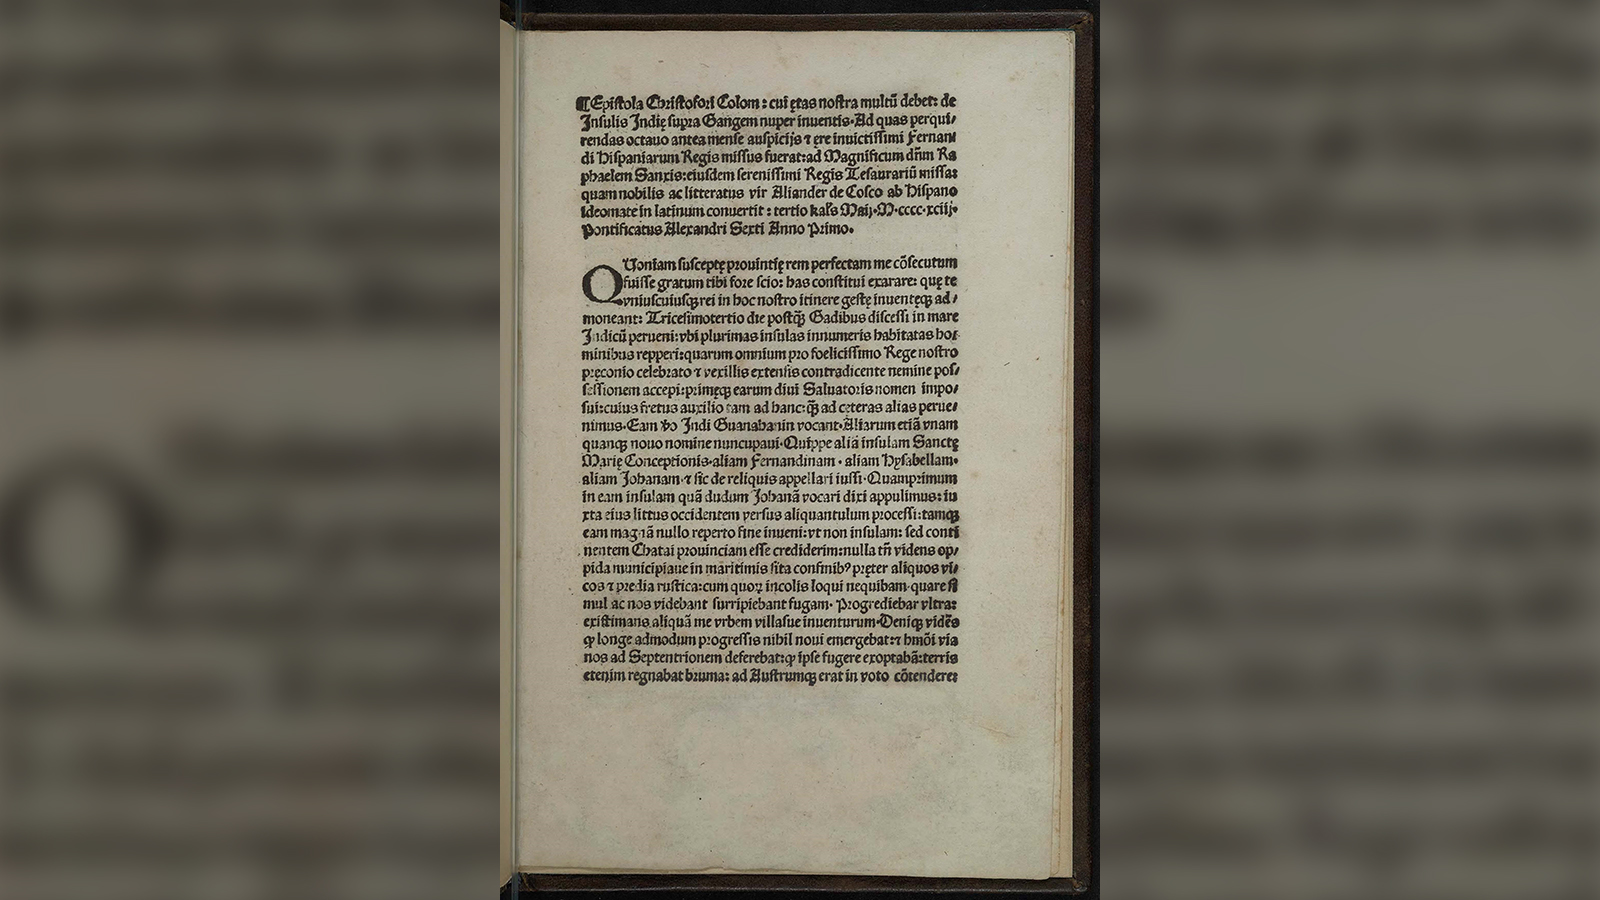 A stolen copy of a rare Christopher Columbus letter has been recovered — and it's not the first time